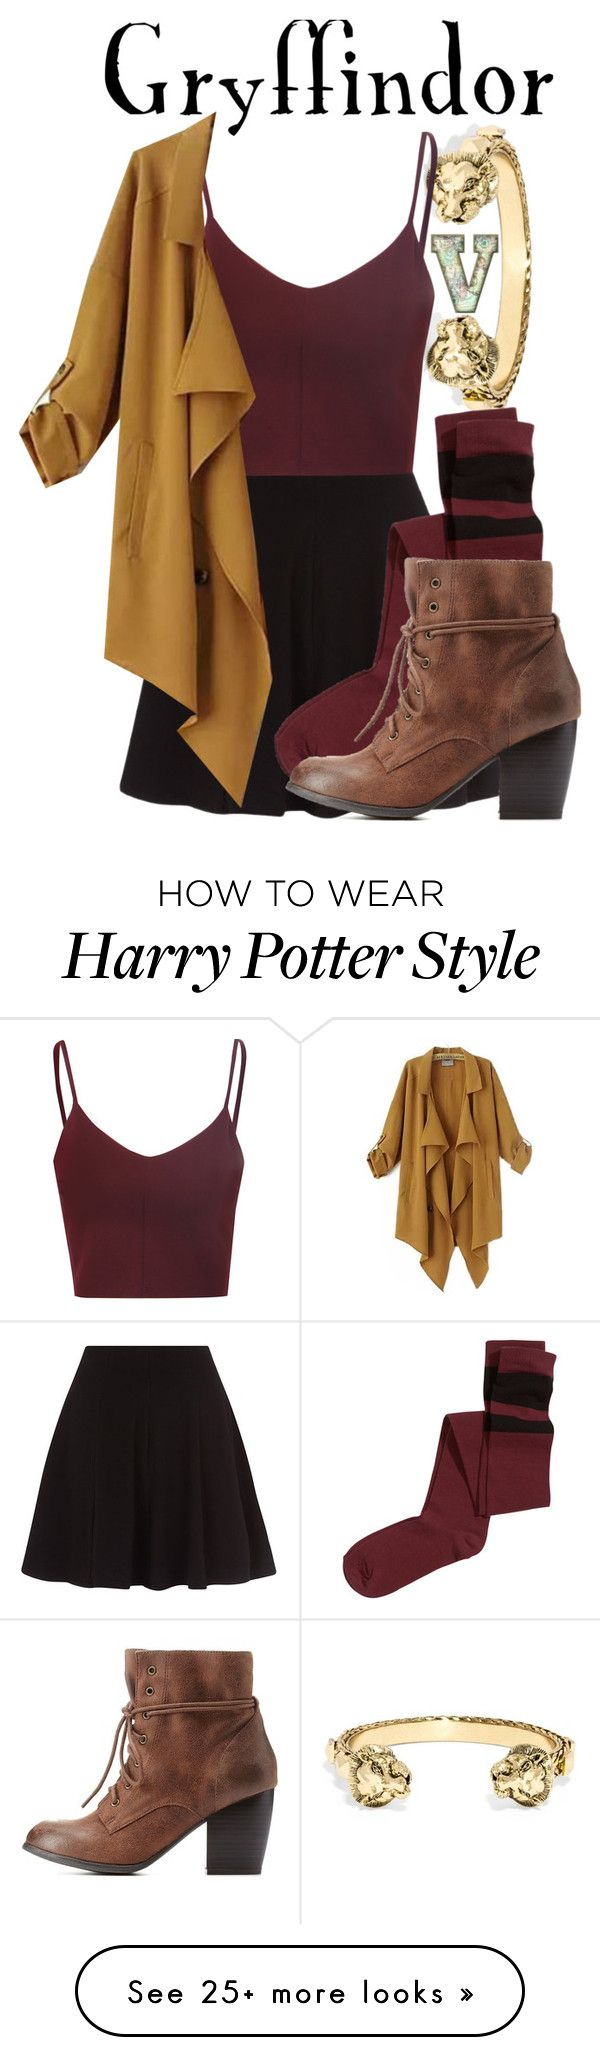 """Gryffindor (Harry Potter Series)"" by fabfandoms on Polyvore featuring #Farbbberatung #Stilberatung #Farbenreich mit www.farben-reich.com BaubleBar, H&M, Glamorous, Charlotte Russe and Chicnova Fashion"